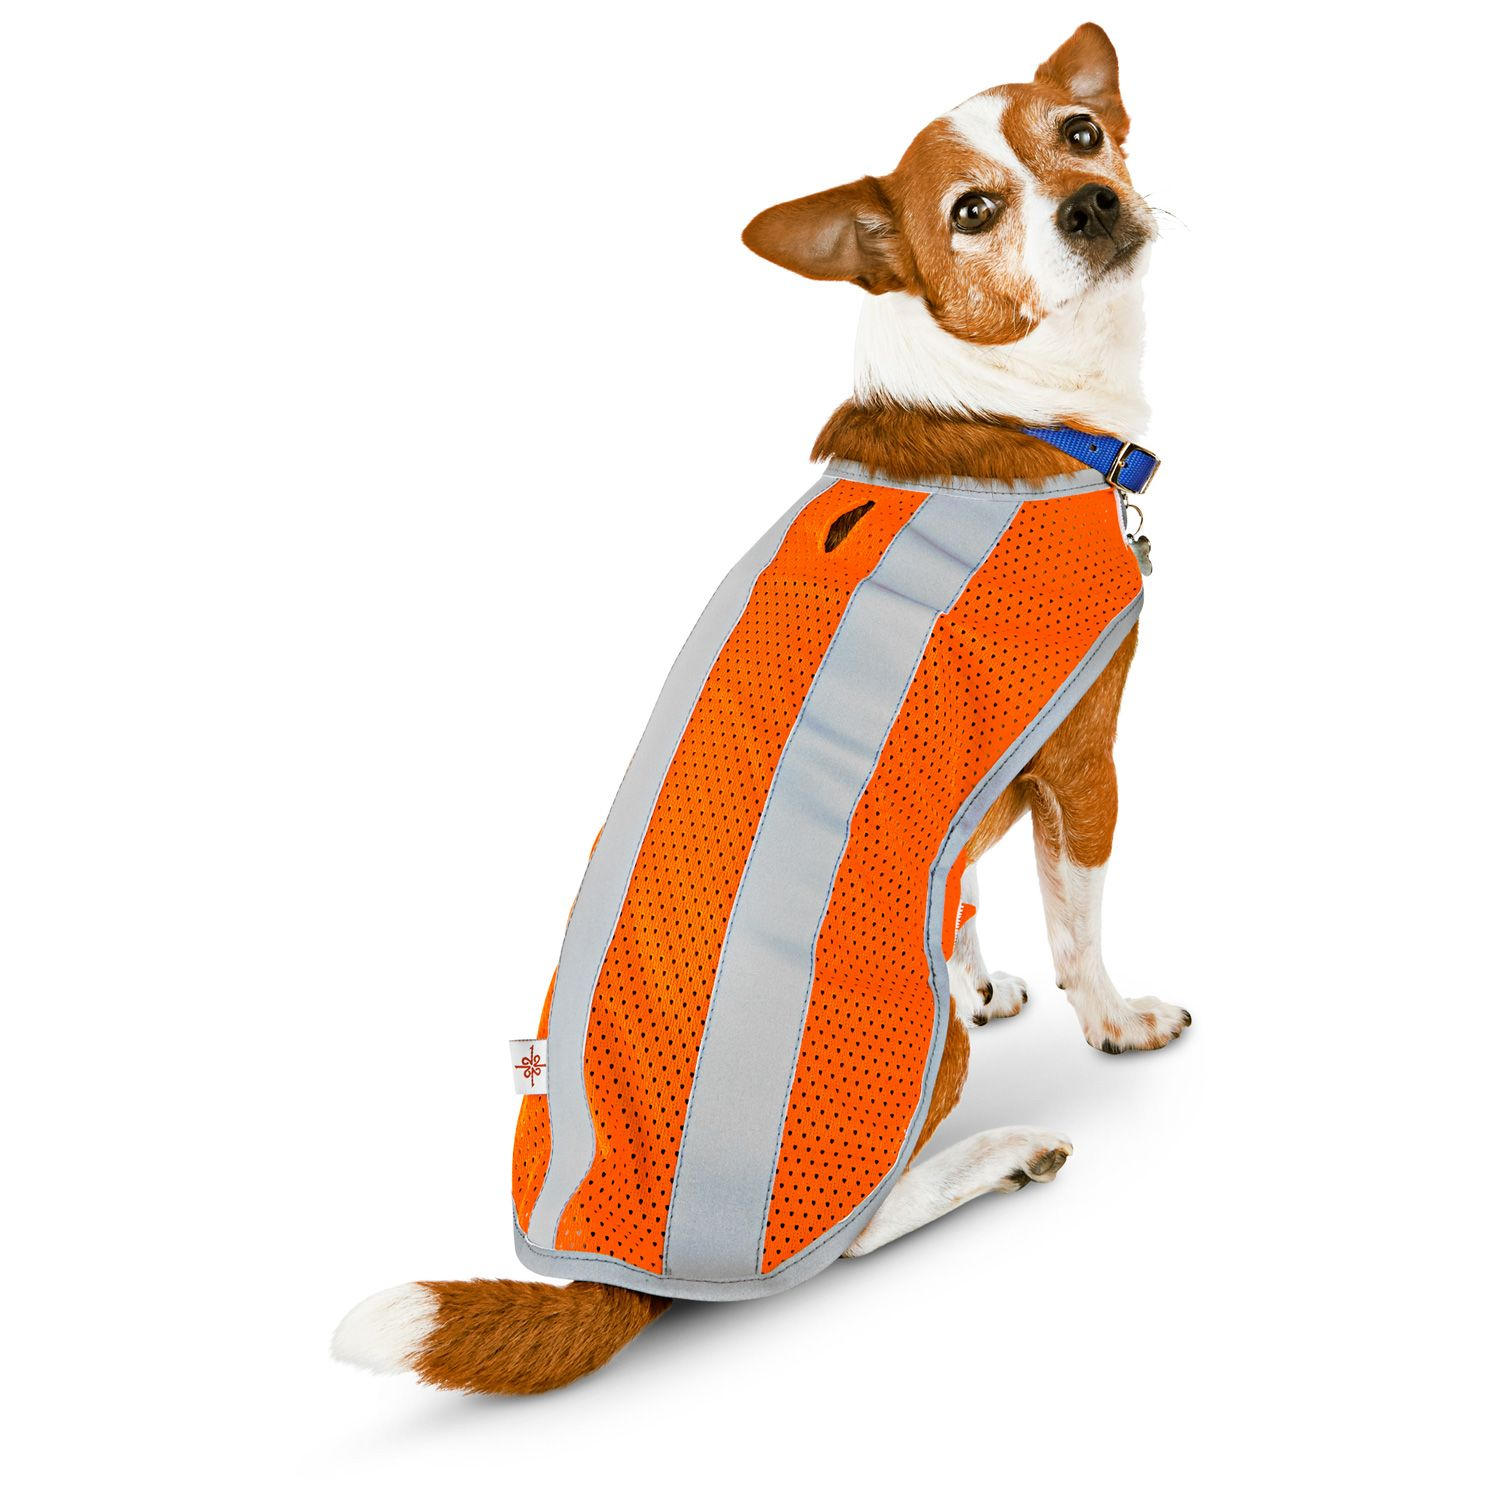 Good2Go Reflective Dog Safety Vest at PETCO